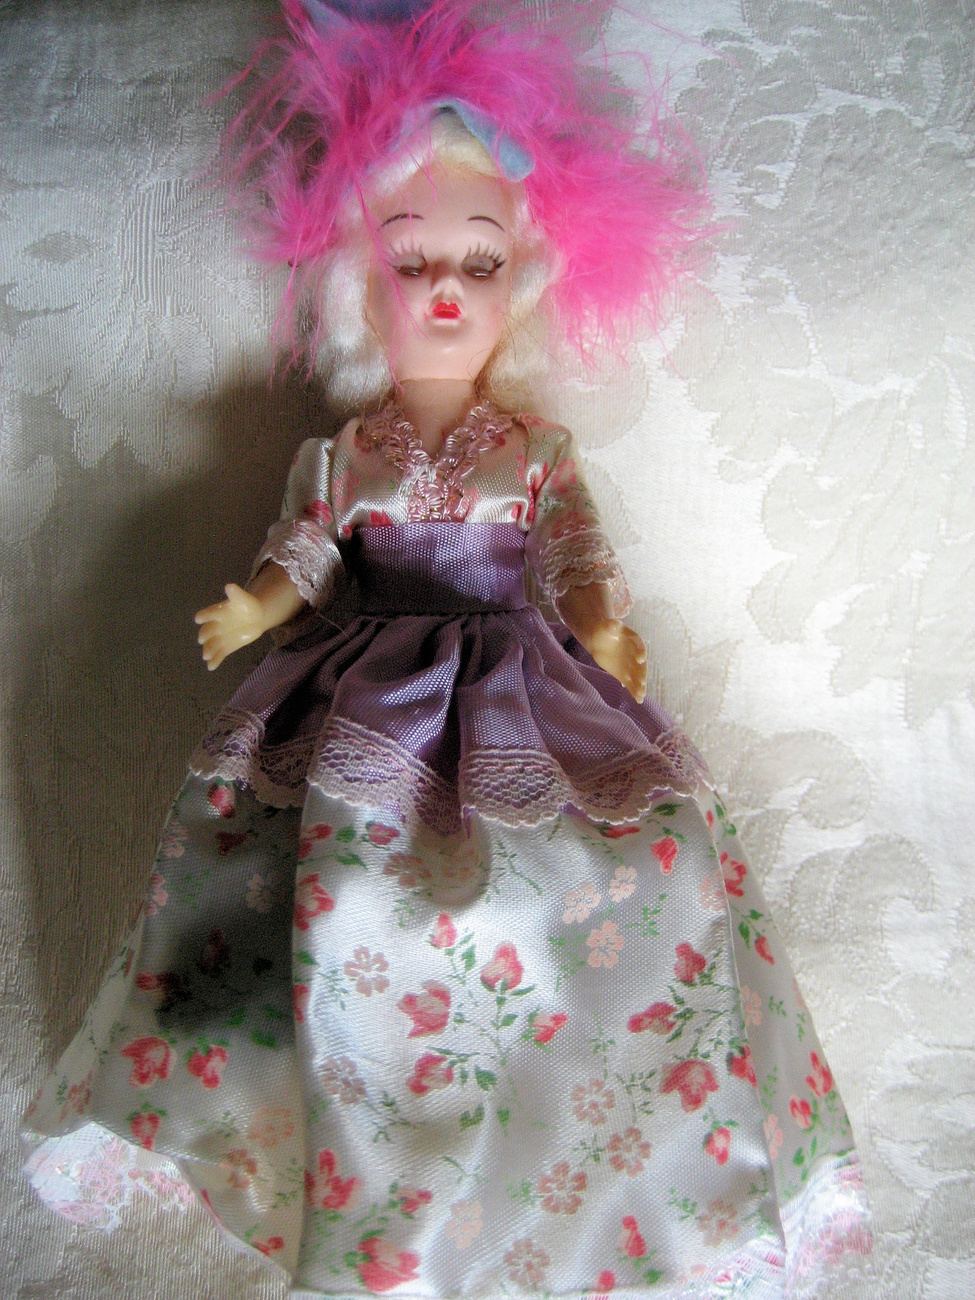 Dolls_fs_004__2_